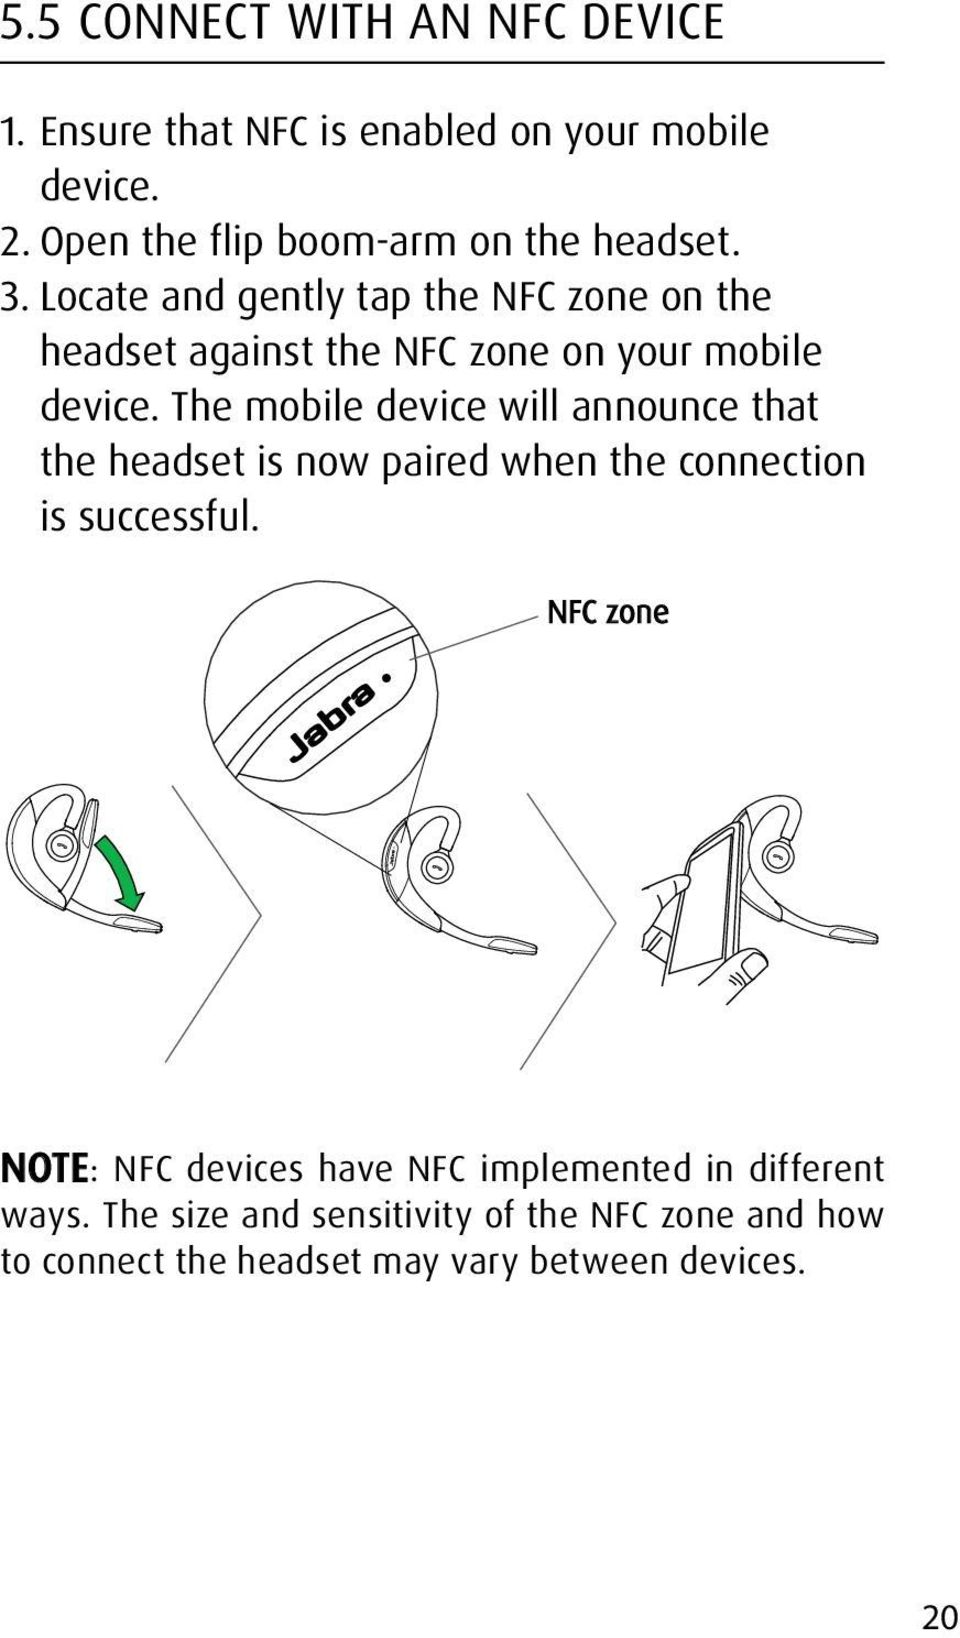 Locate and gently tap the NFC zone on the headset against the NFC zone on your mobile device.